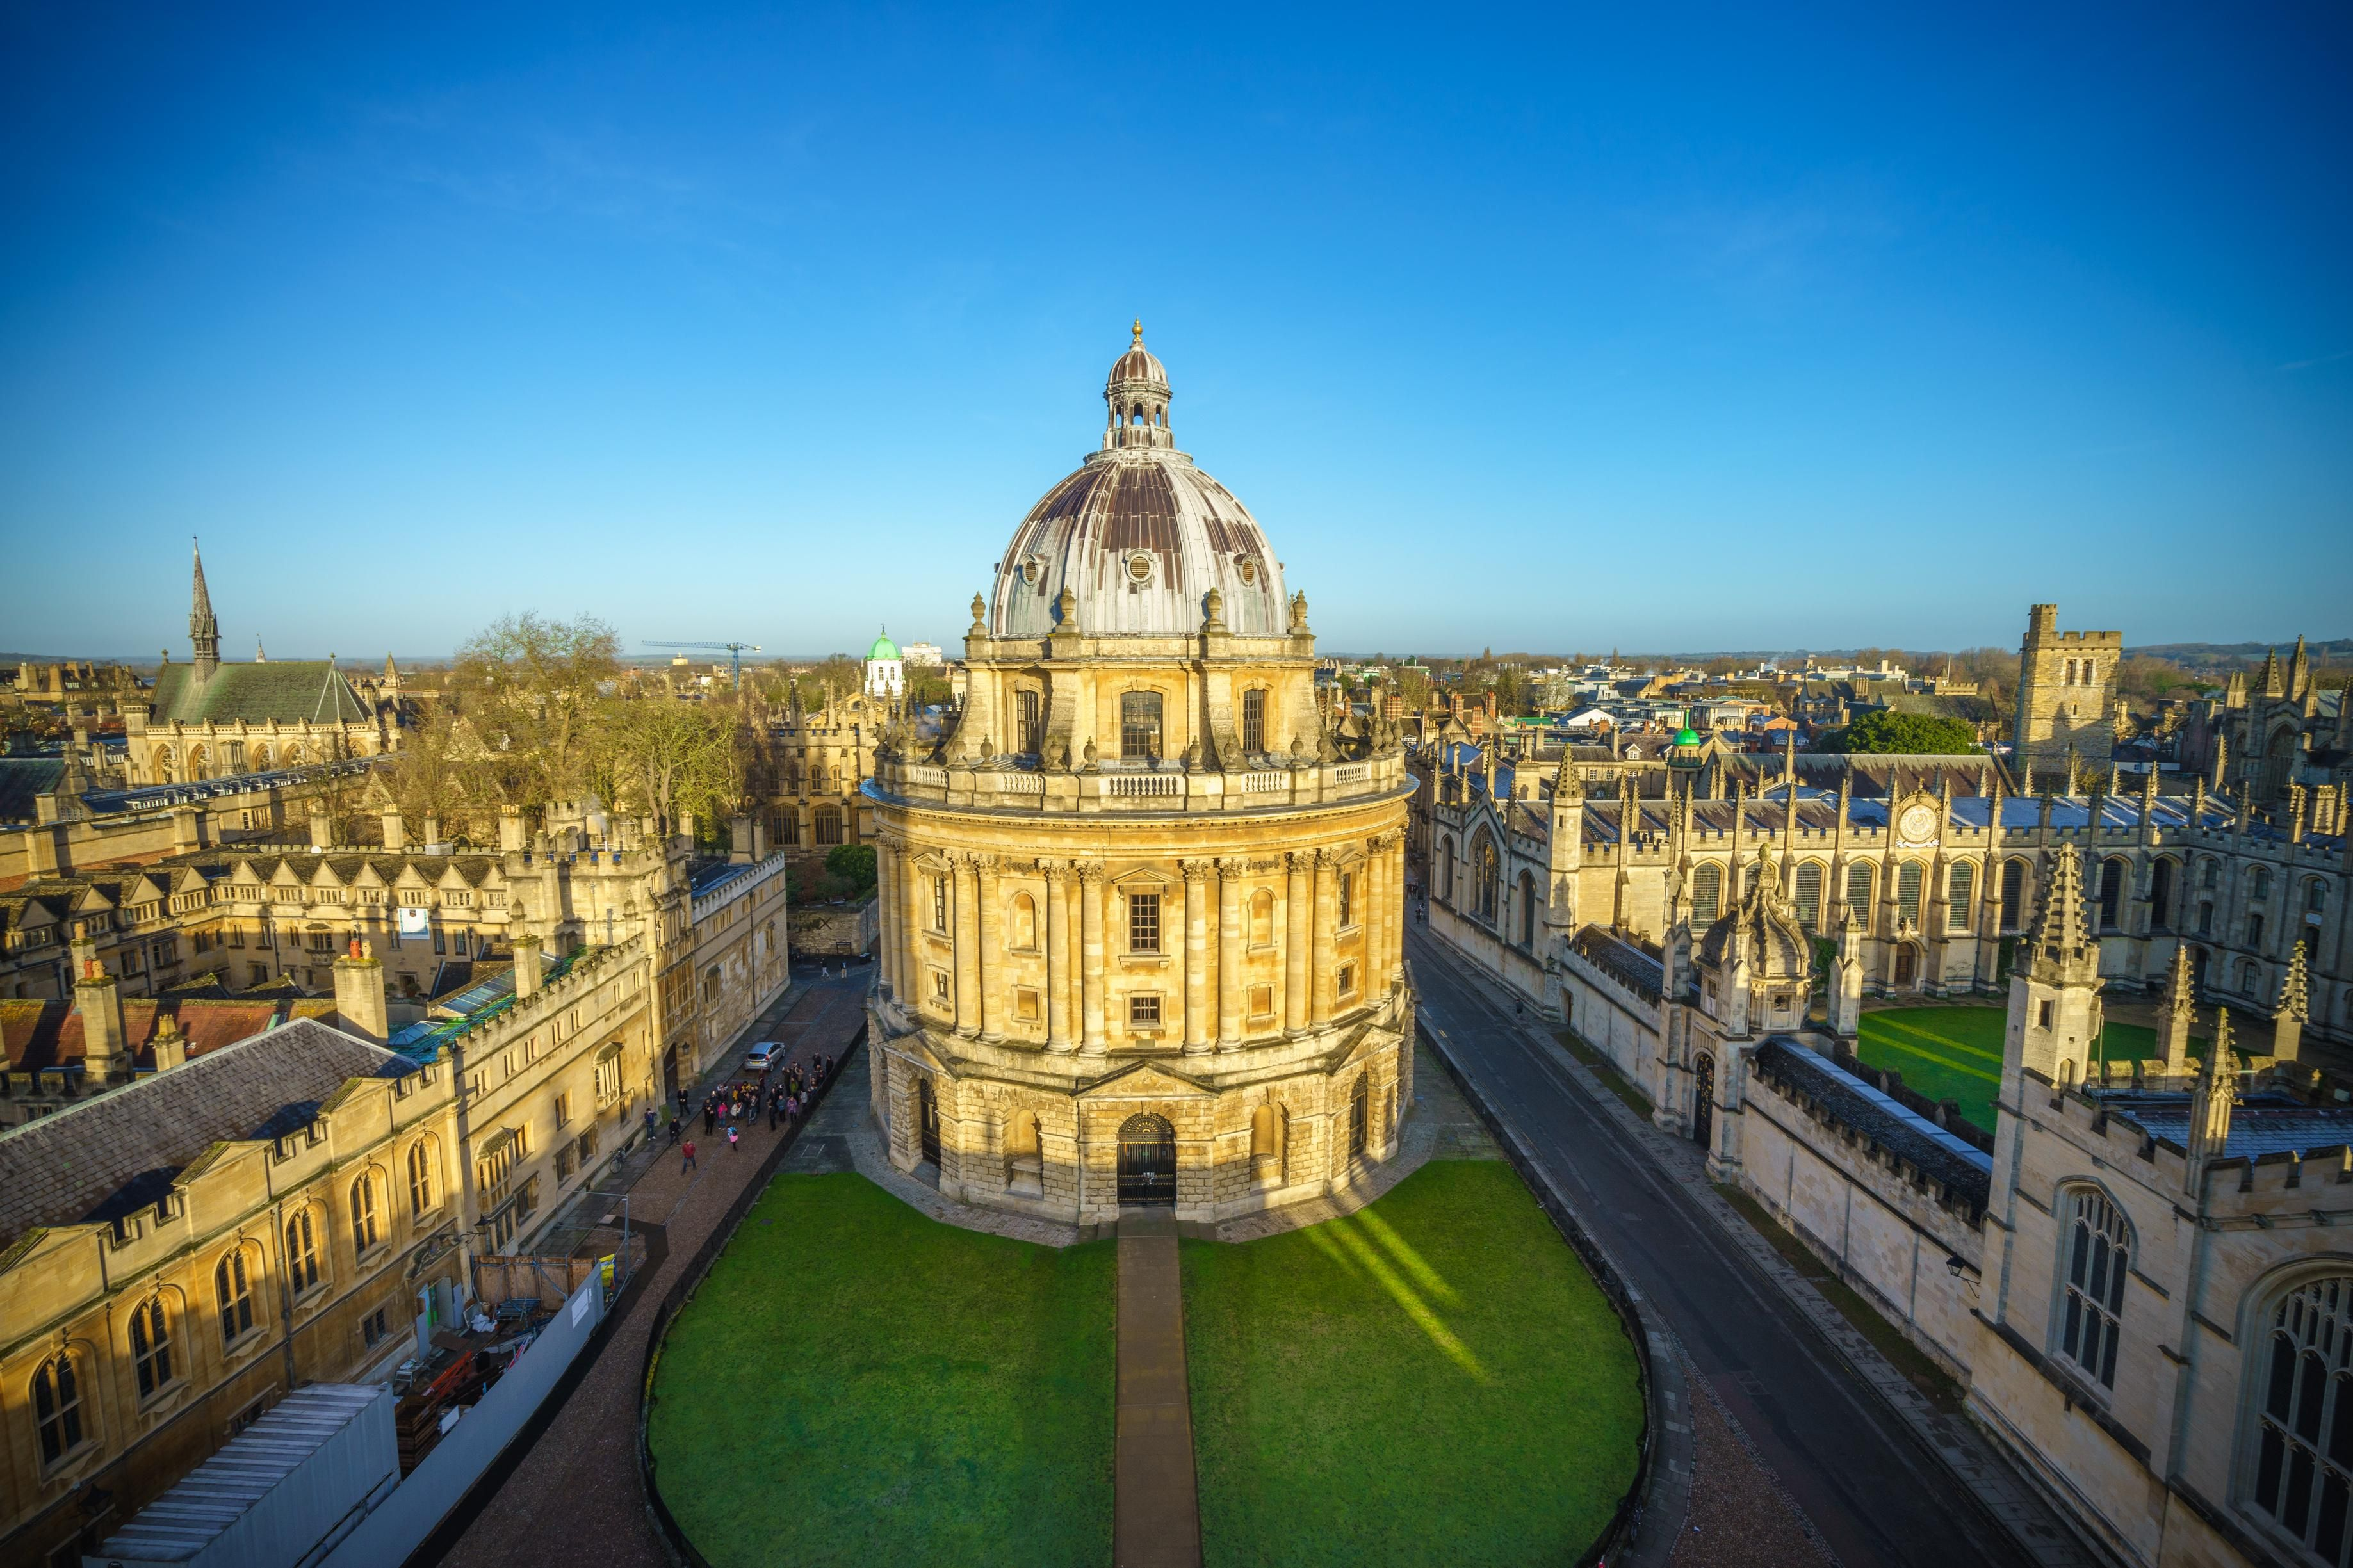 Aerial view of the Oxford University City viewed from the top tower of St Marys Church at sunrise. All Souls College, United Kingdom, England. Panoramic view